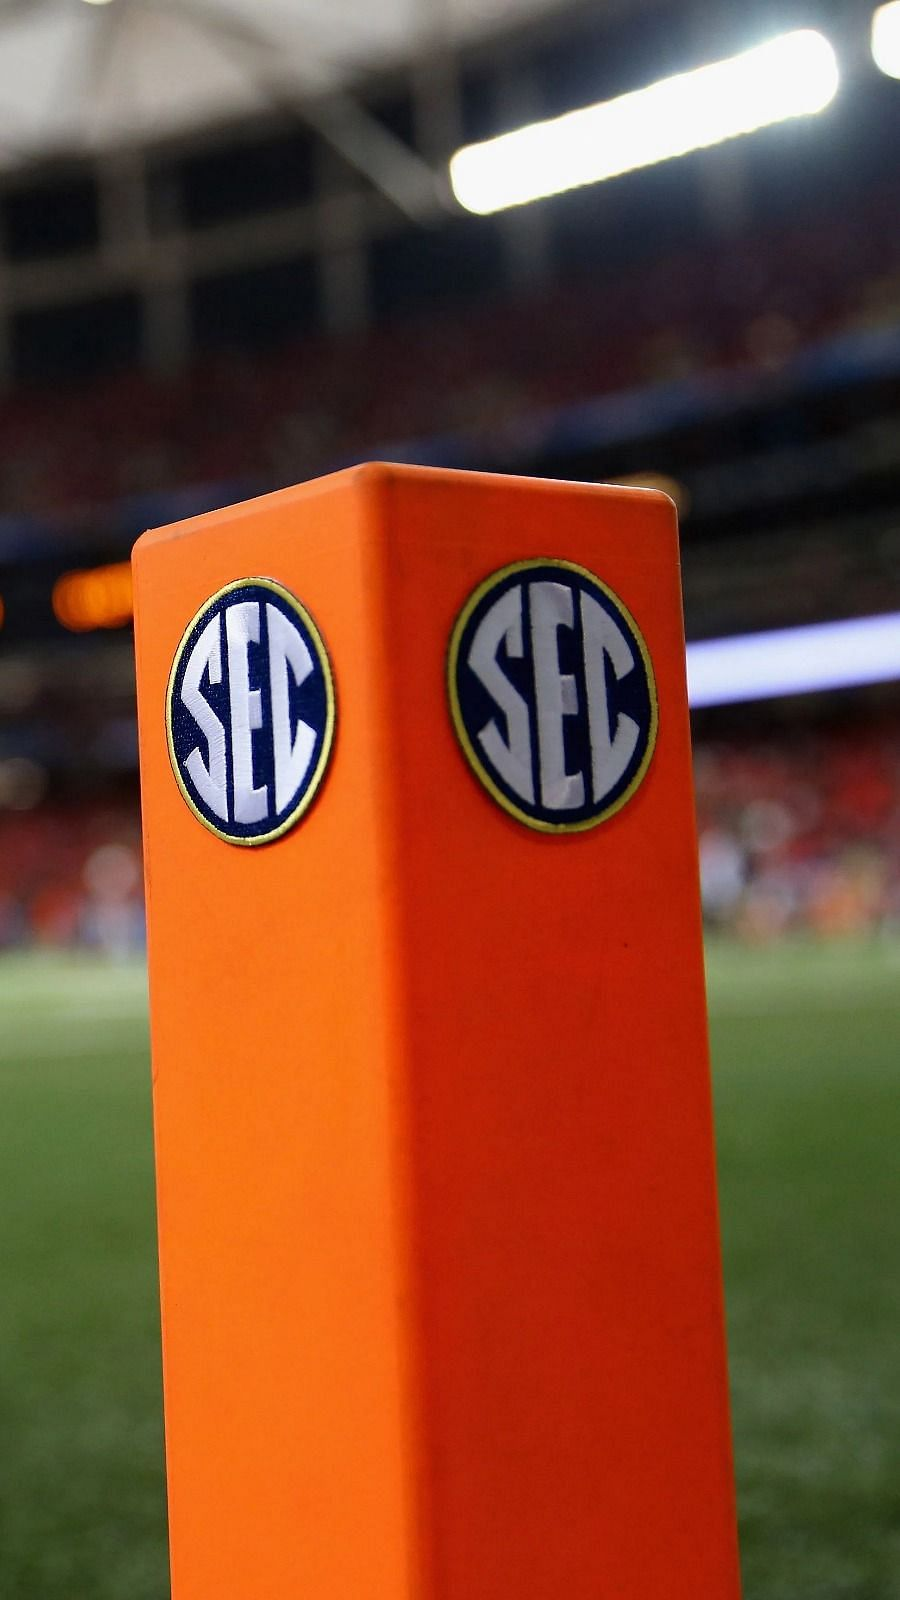 Sec And Espn Agree To 10 Year Deal Espn Gets Rights To Sec Football And Basketball